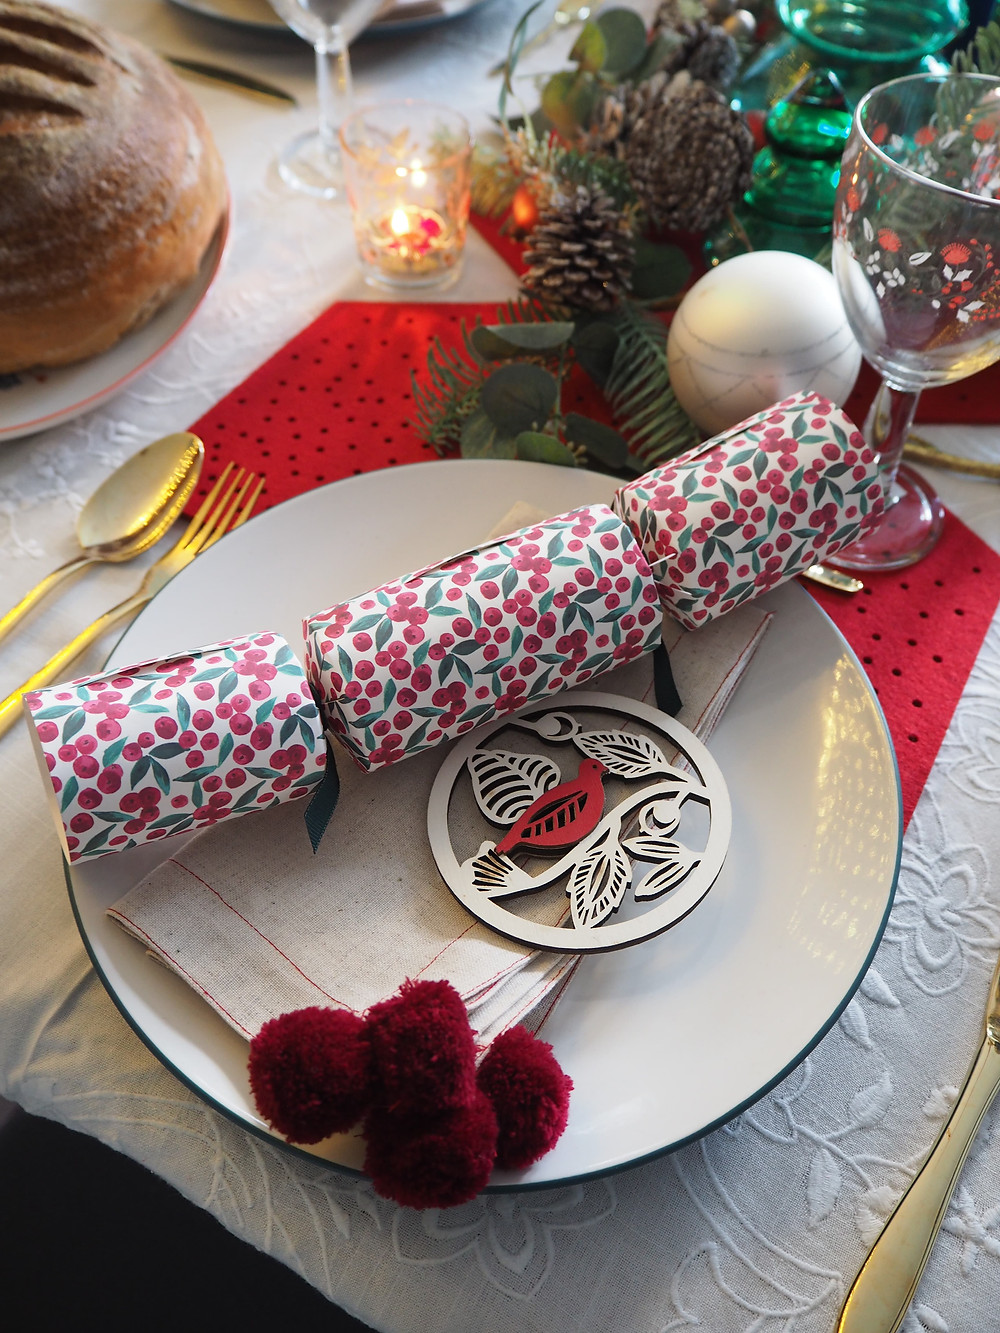 How to set your Christmas table with John Lewis Christmas crackers in pink and green with blue background and fairy lights, felt cracker centrepiece from the Folklore collection. Gold cutlery table setting.